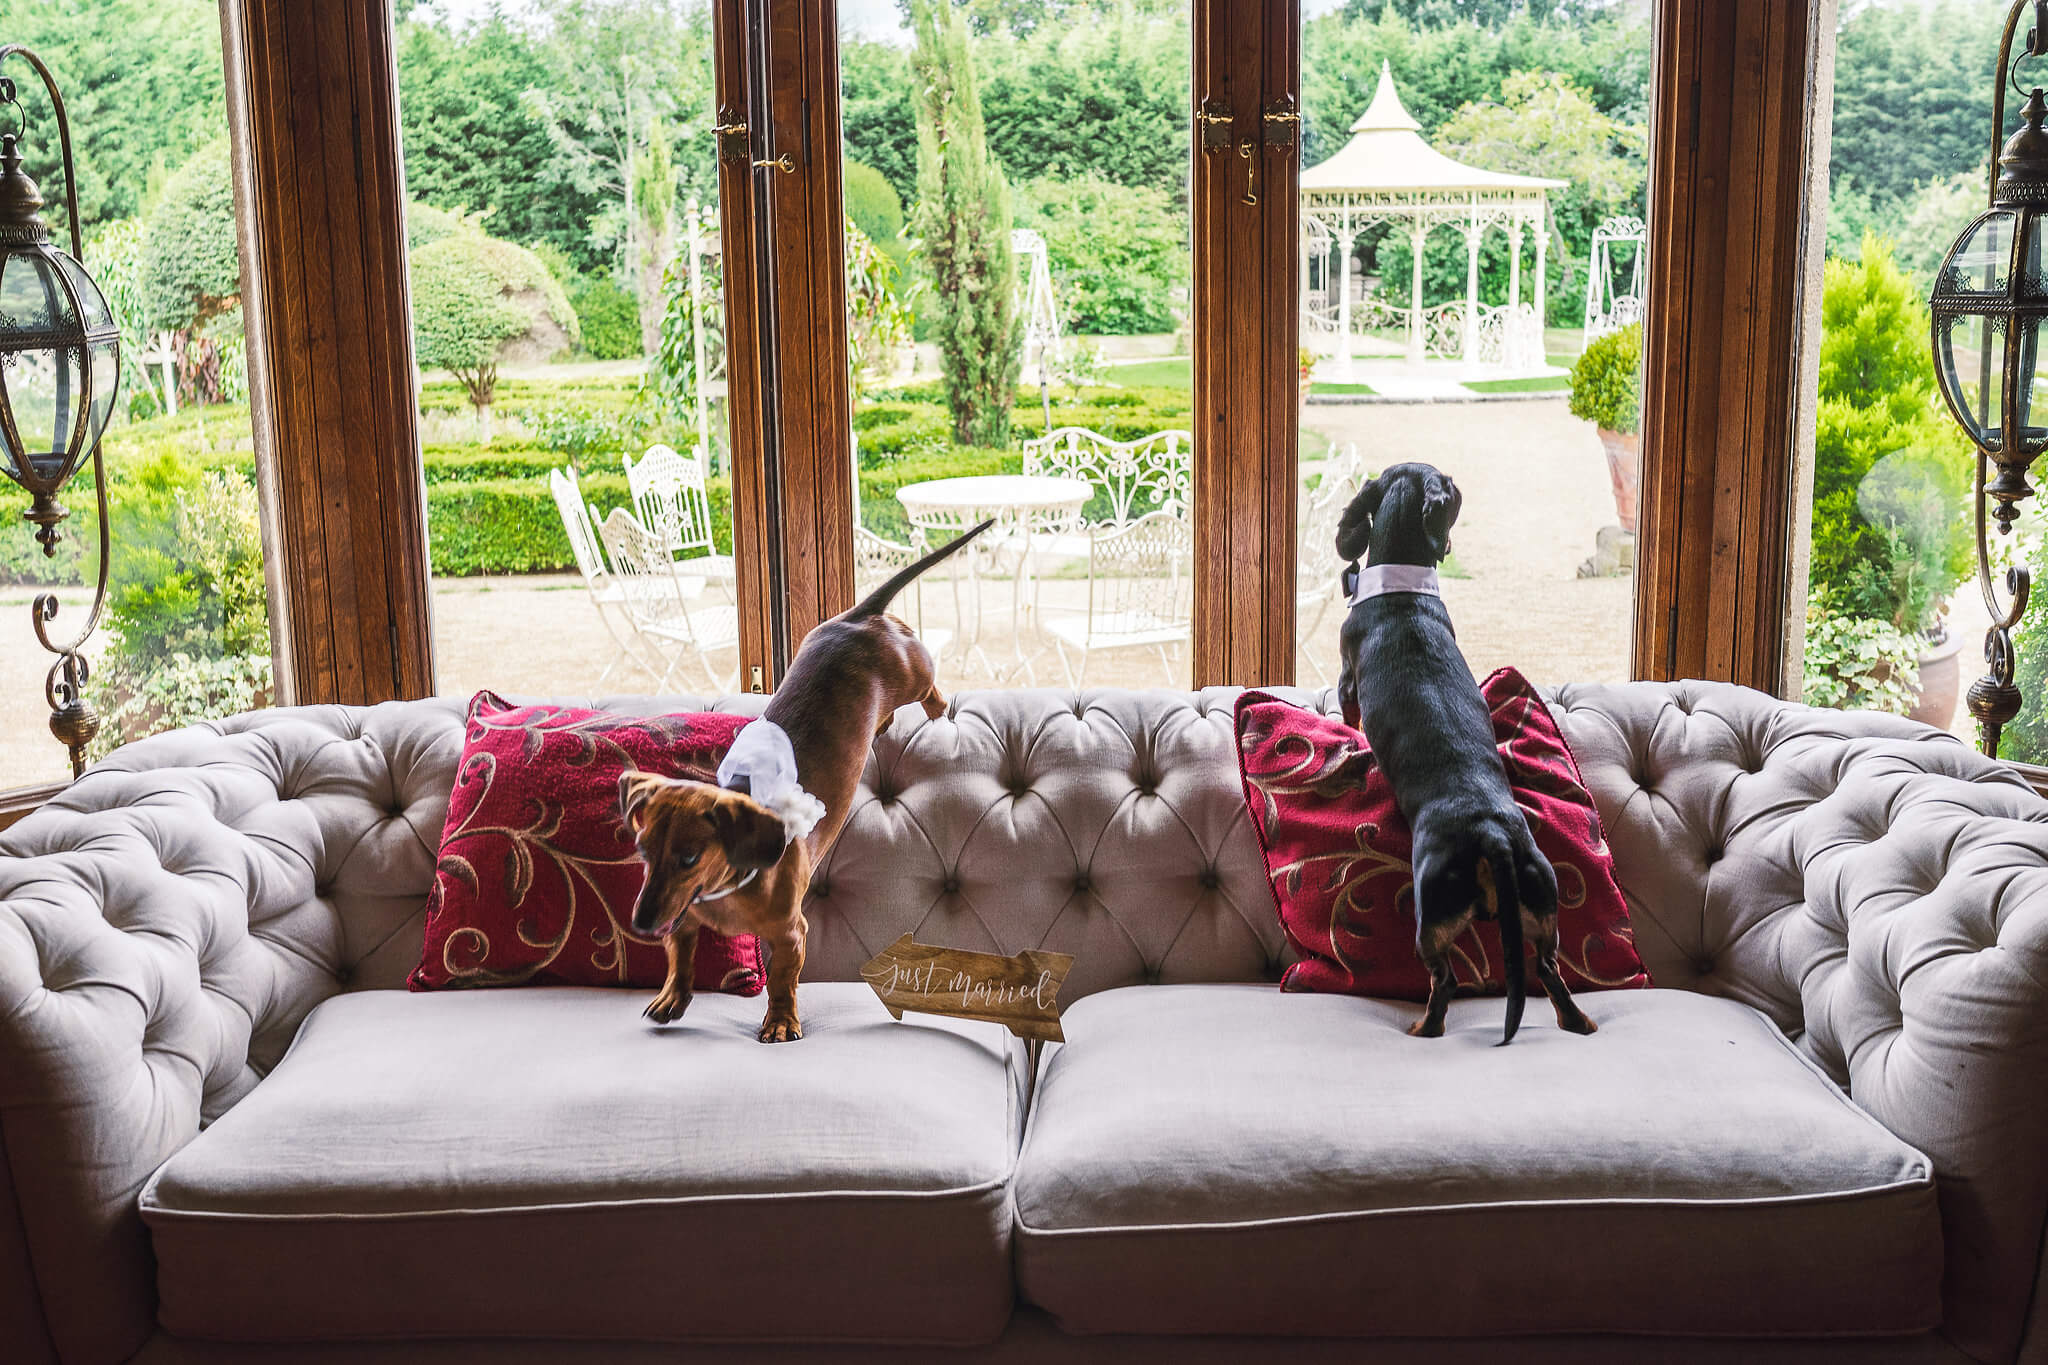 pet friendly venue in the library